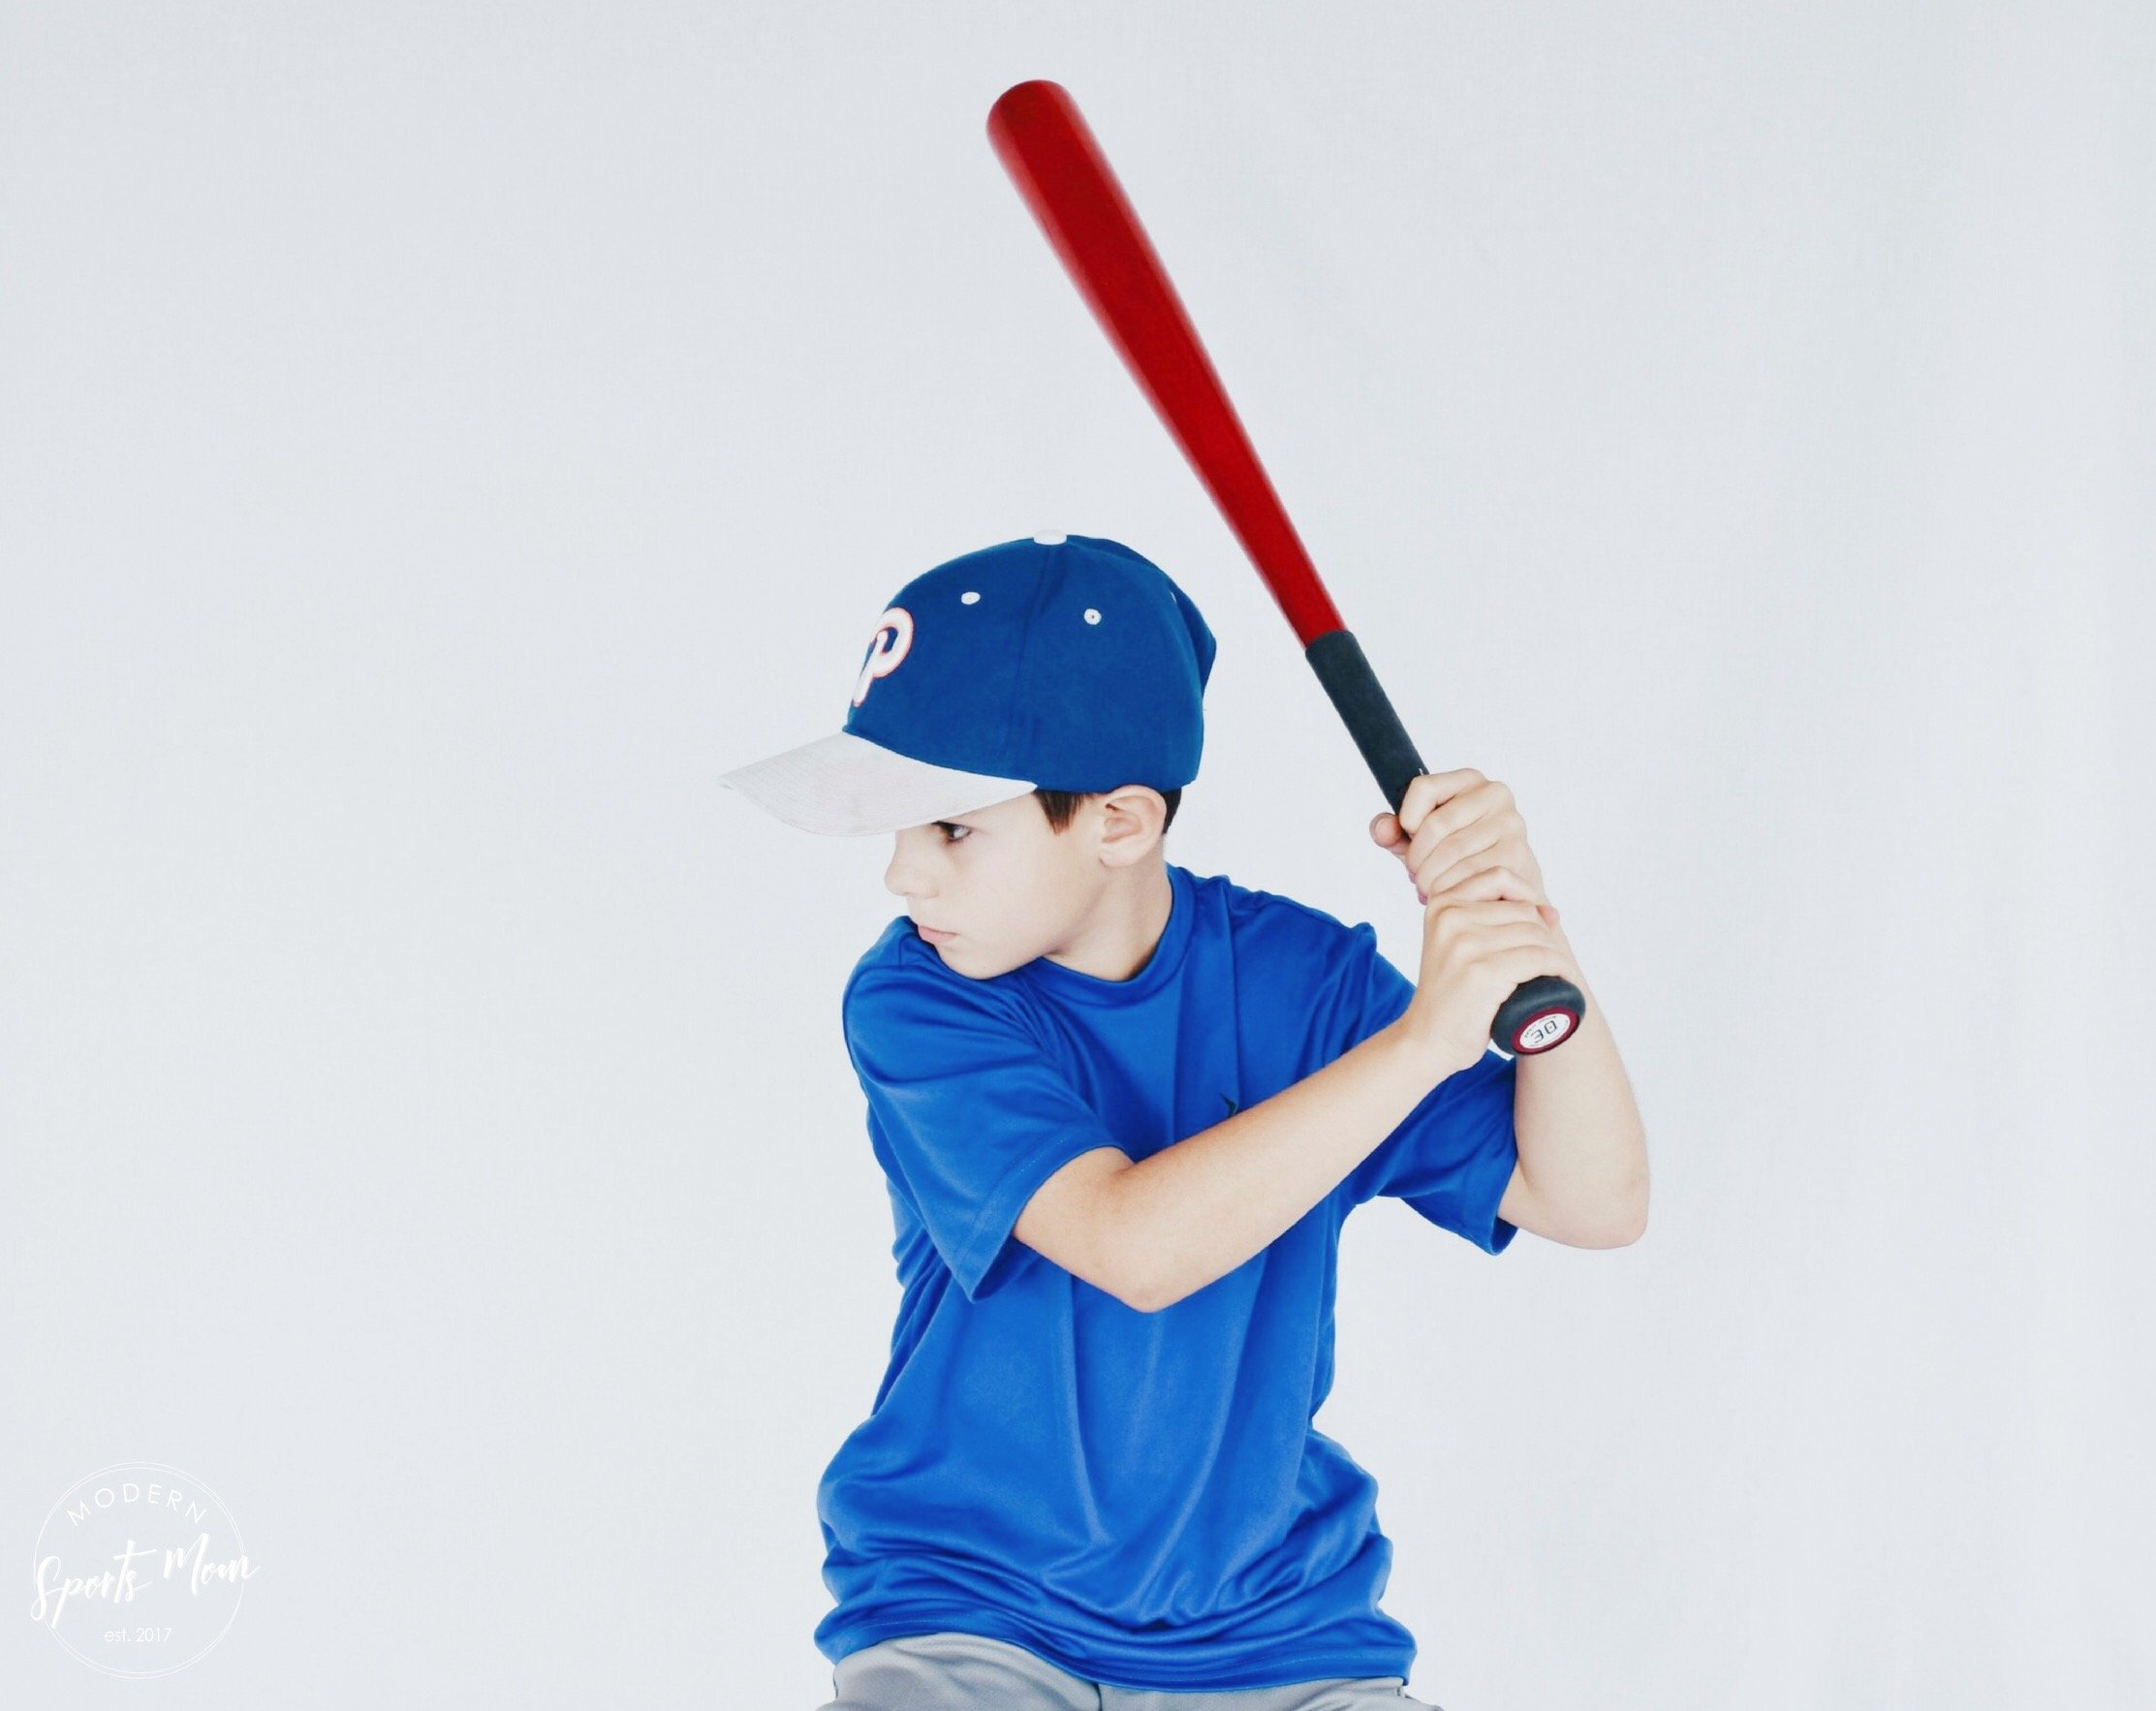 Youth baseball player using Sniper Skin bat grip!